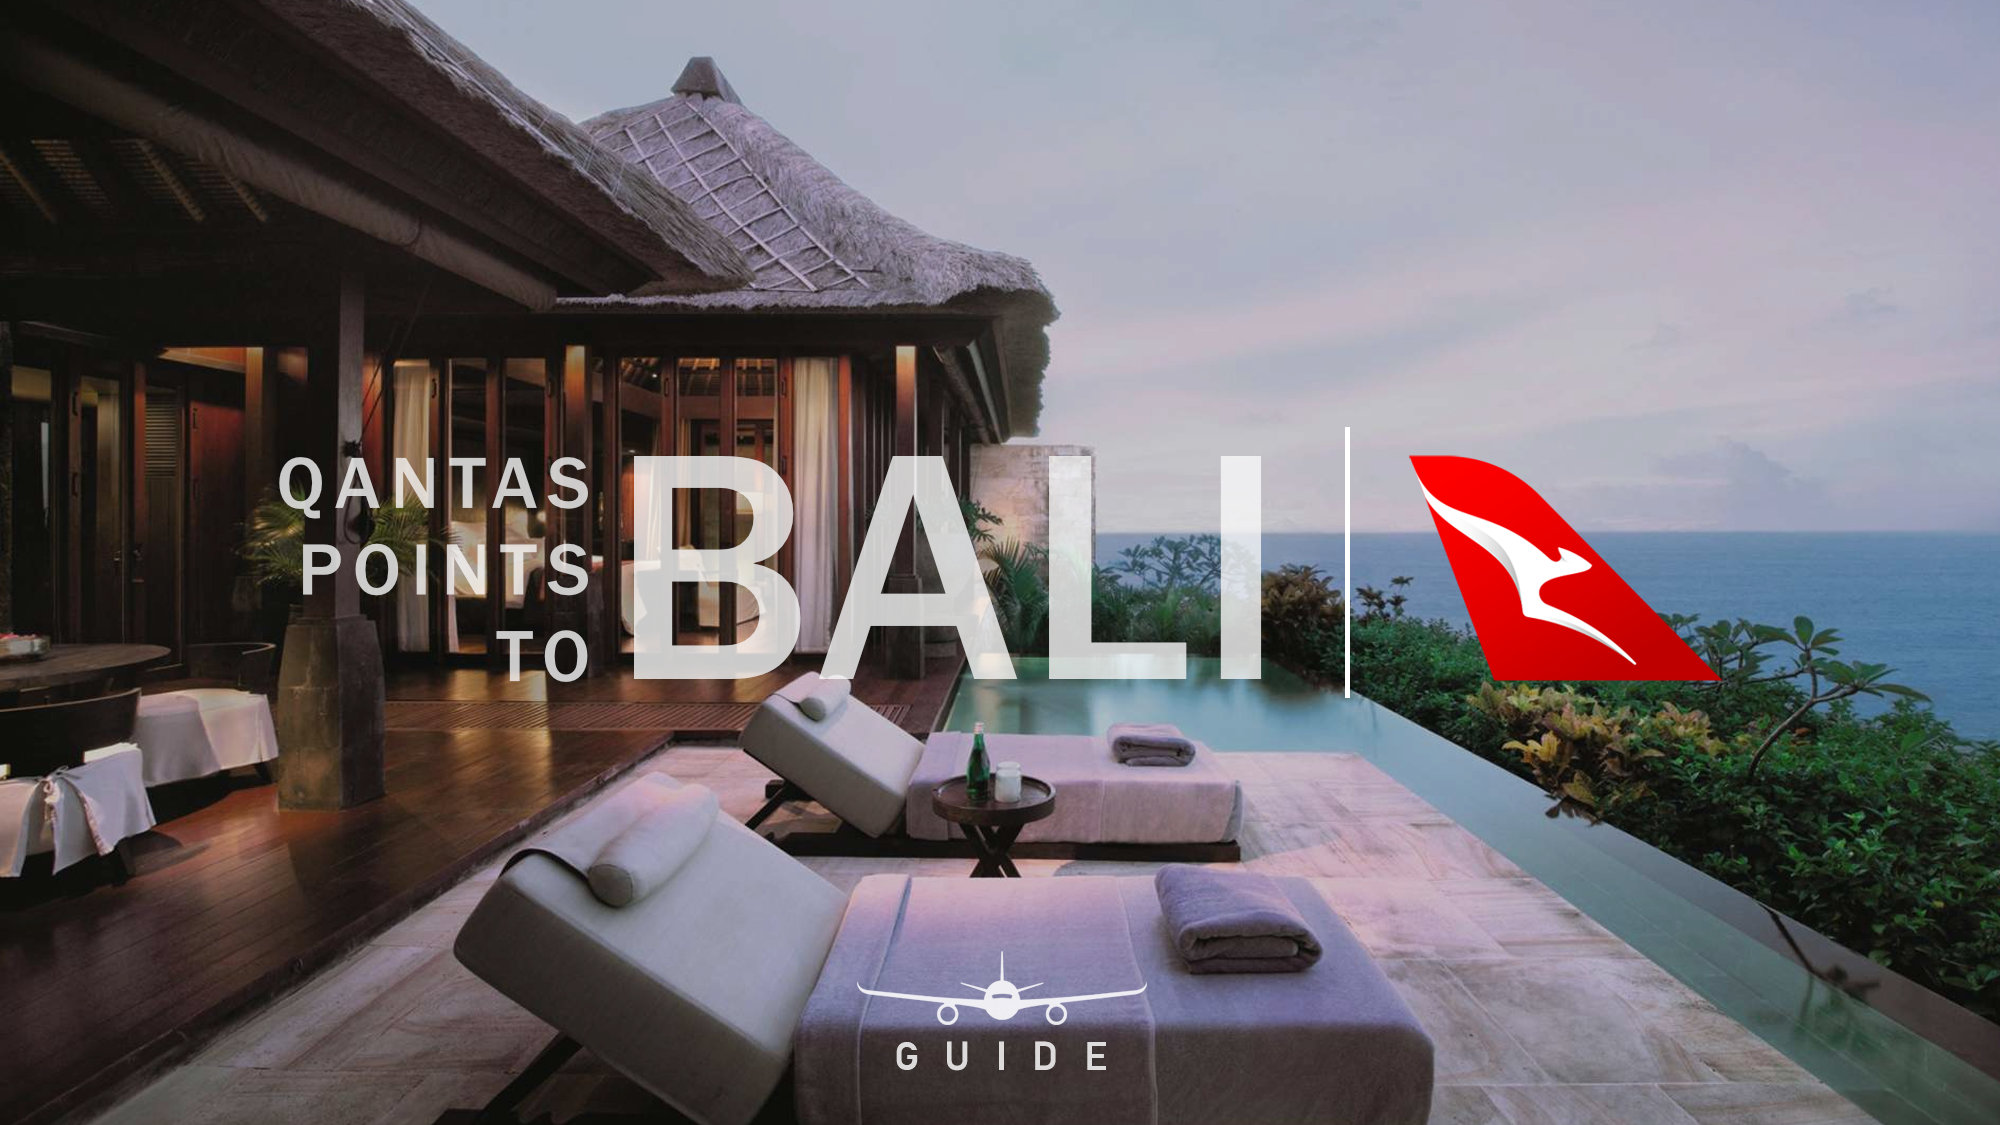 Learn how to use Qantas Points to fly to Bali.